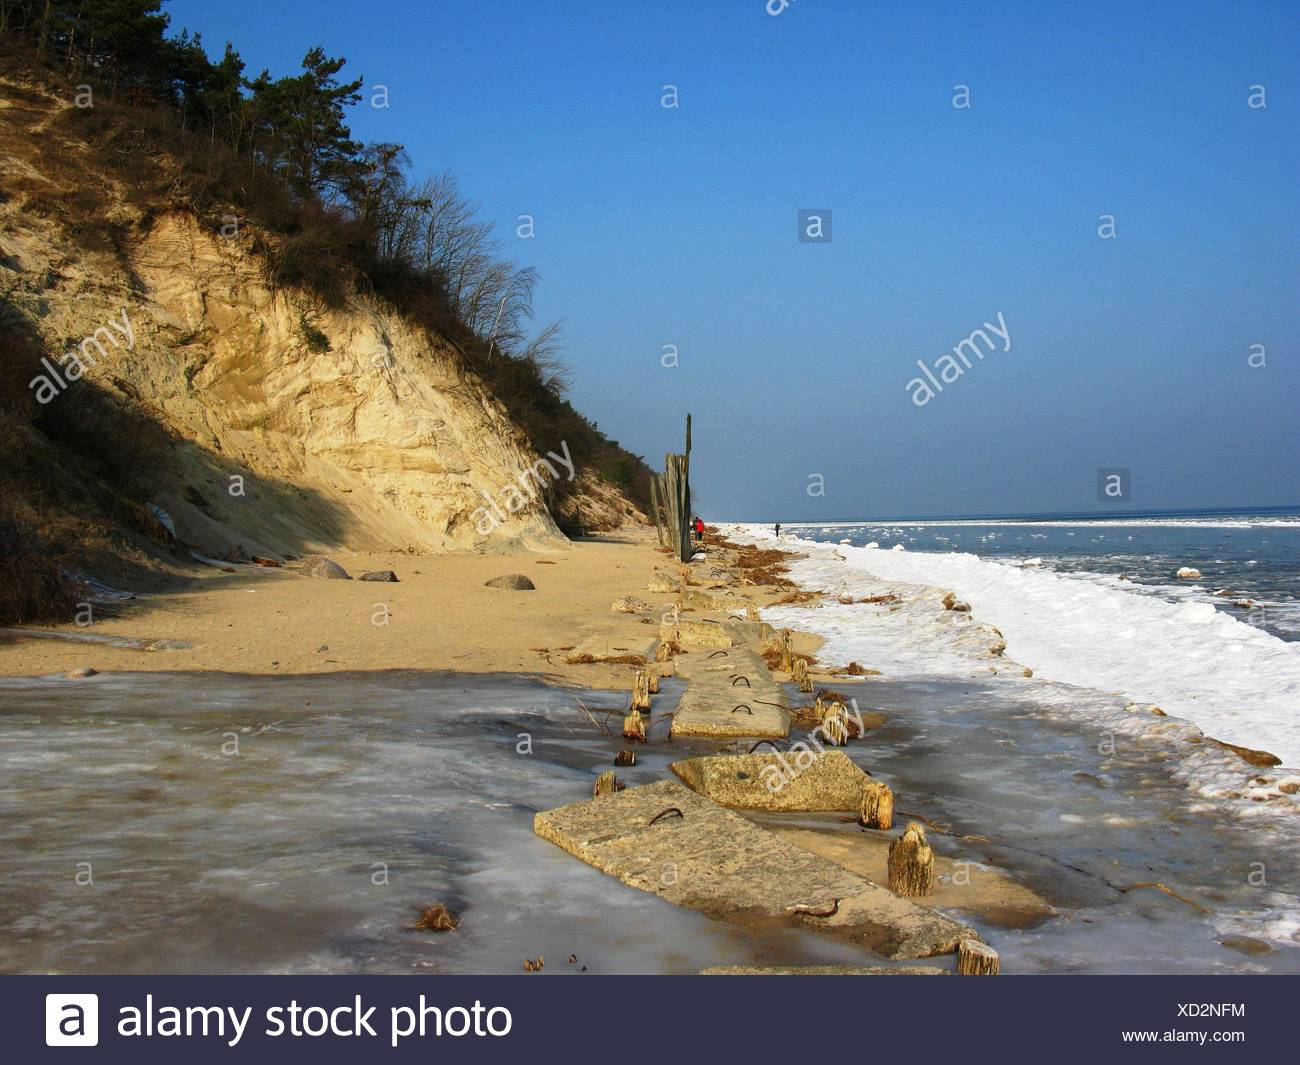 cliffs in winter - Stock Image